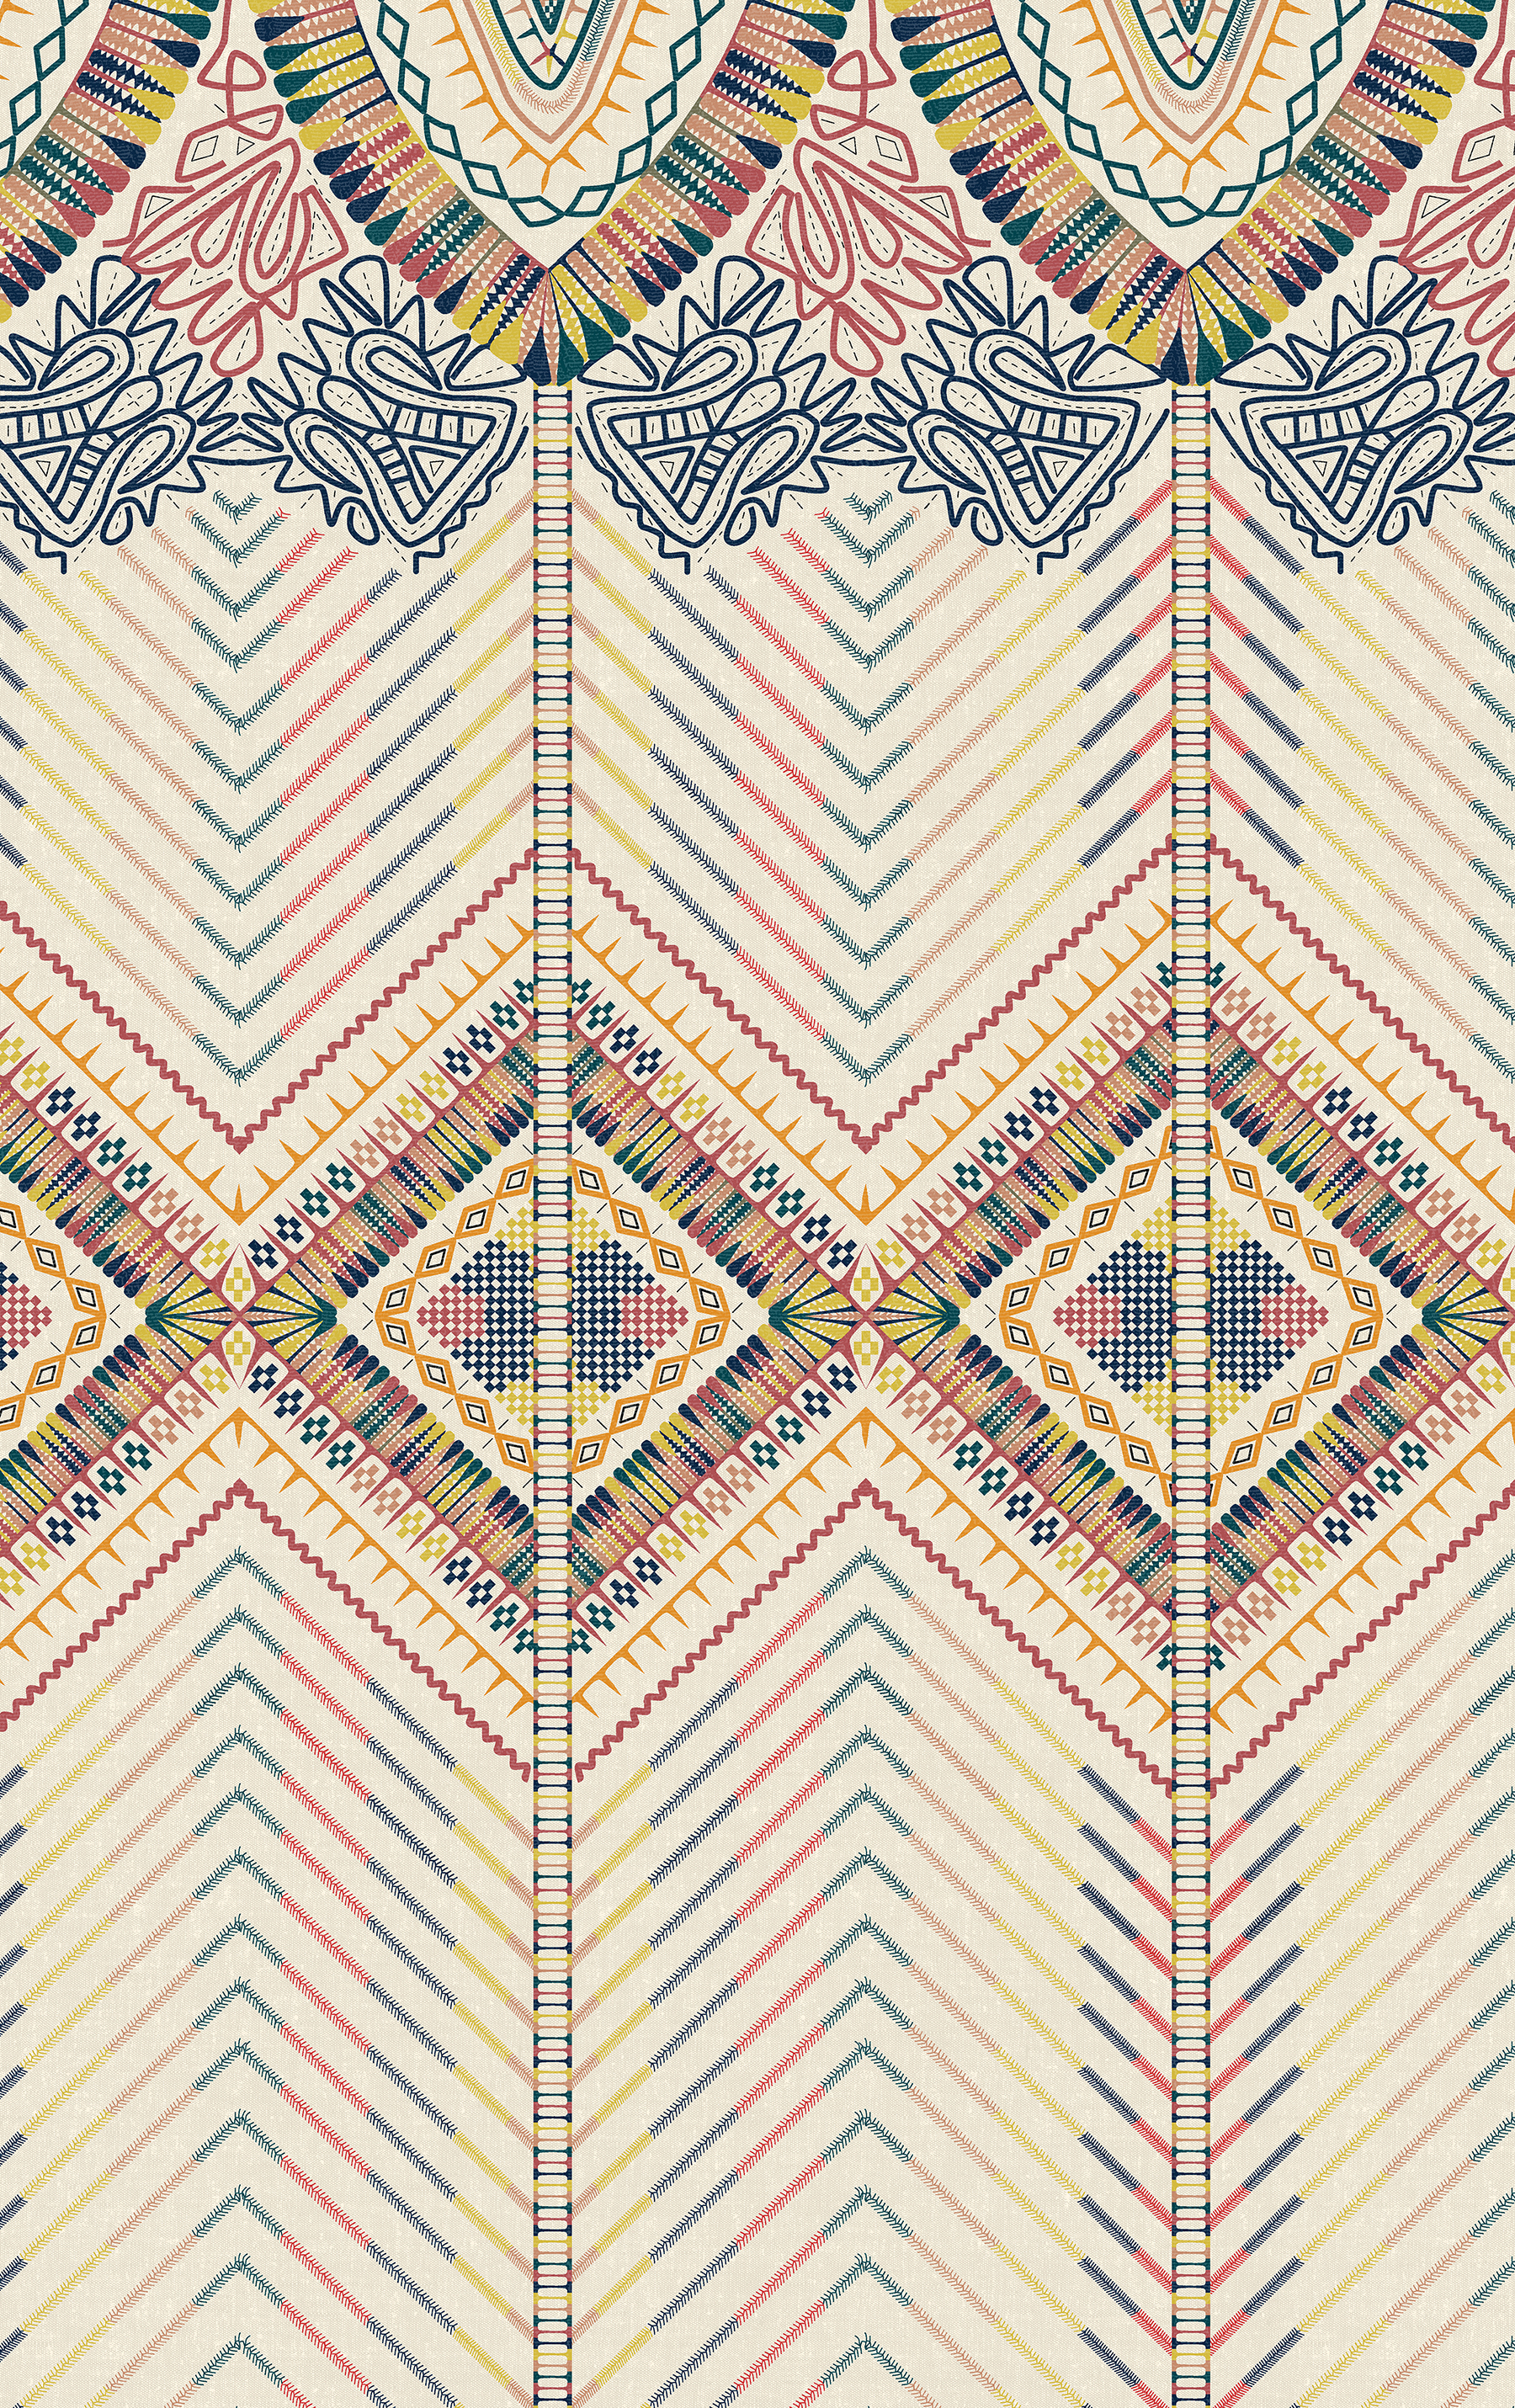 TRIBAL CHEVRON BORDER_CREAM MULTI_LAYOUT_REVISED.jpg